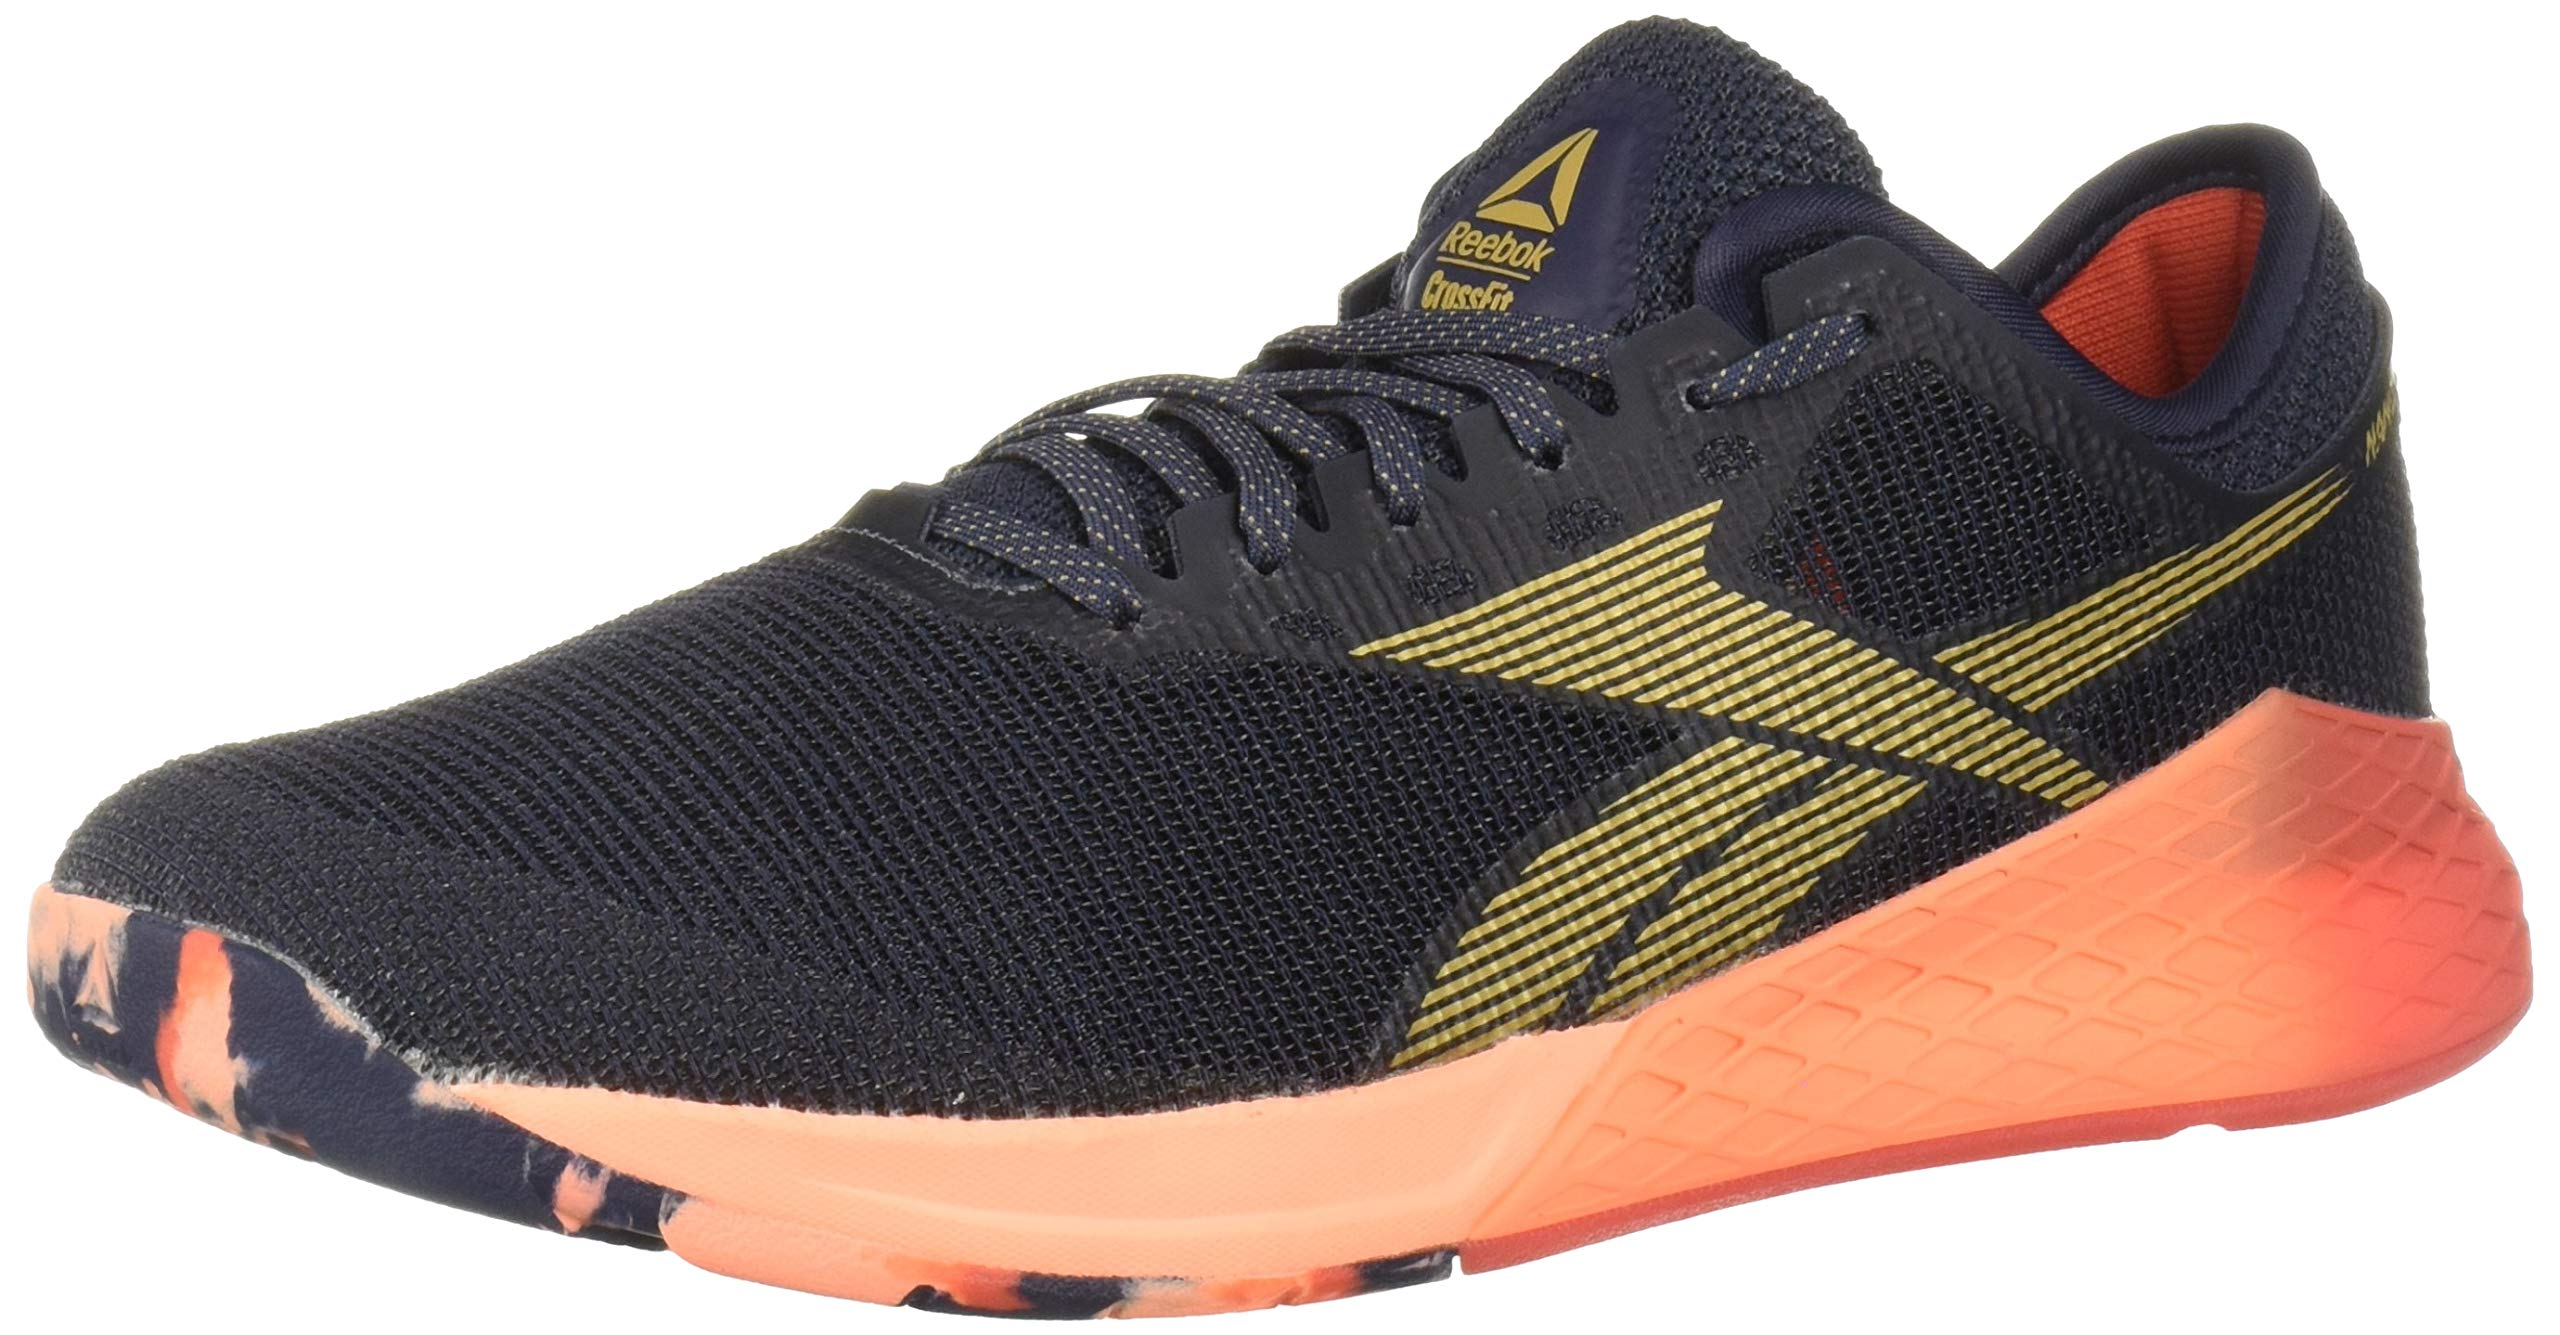 Reebok Men's Nano 9 Cross Trainer, Heritage Navy/Rosette/Sunglow, 6.5 M US by Reebok